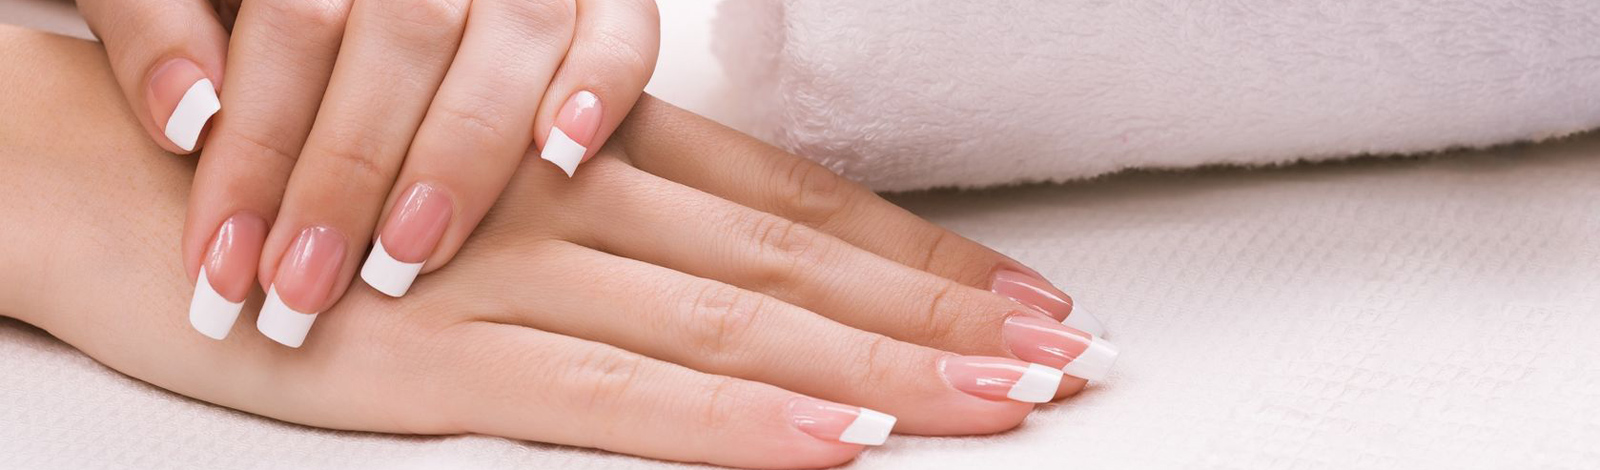 Nail Salon 55442 | Nails & Company of Plymouth, MN | Acrylic Nails ...